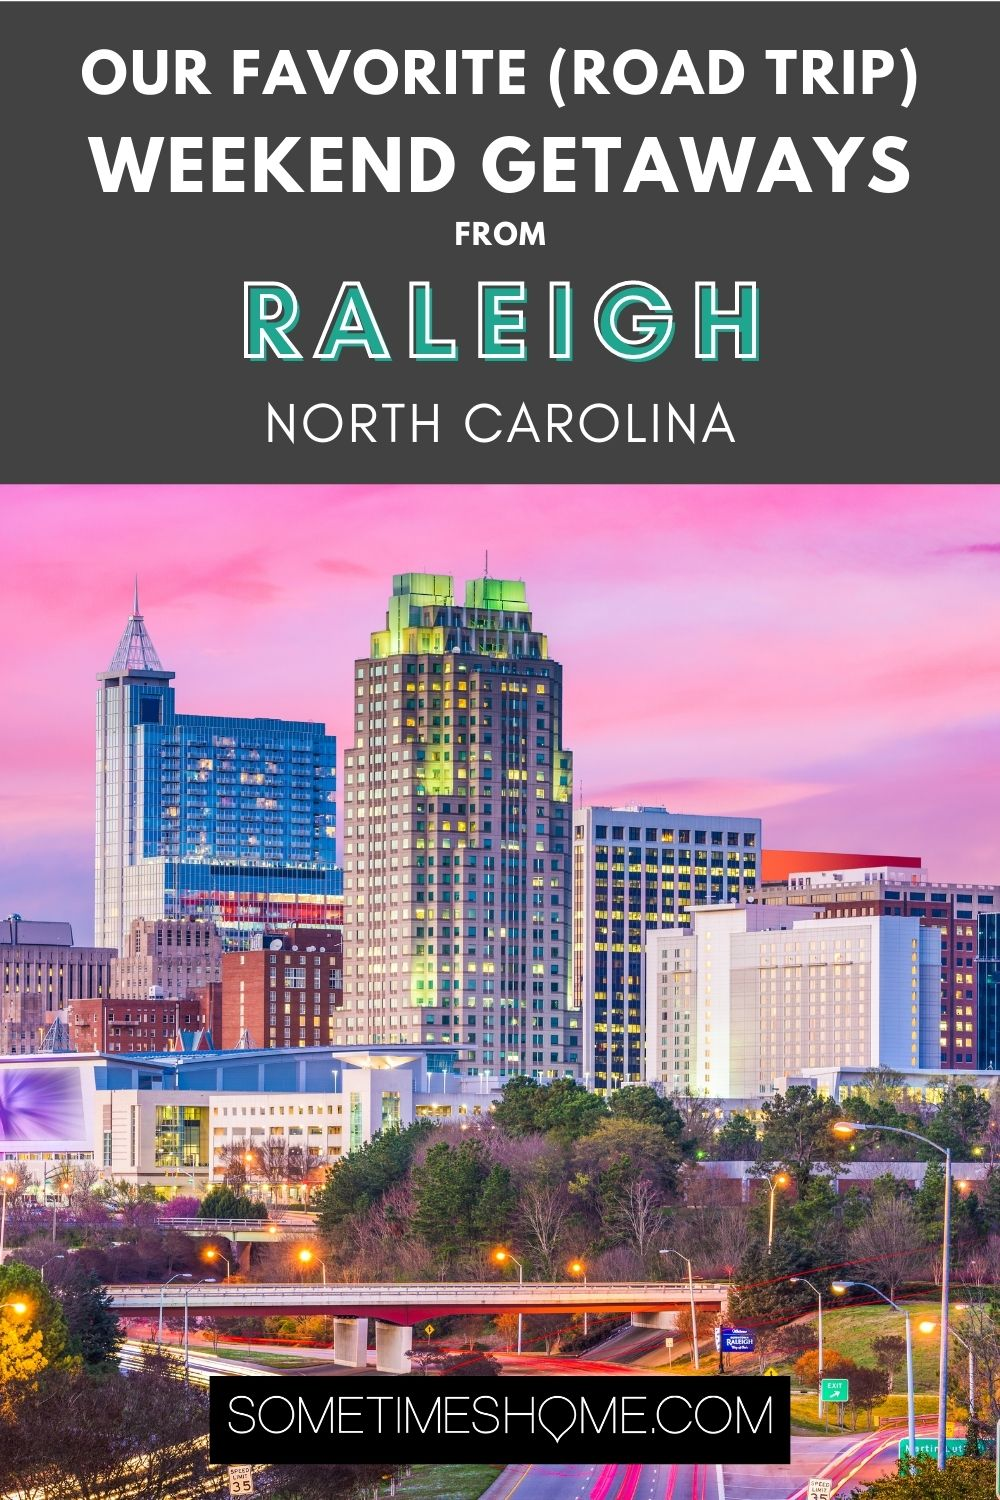 Pinterest graphic for Our Favorite (Road Trip) weekends getaways from Raleigh, North Carolina with a pink sky and buildings.